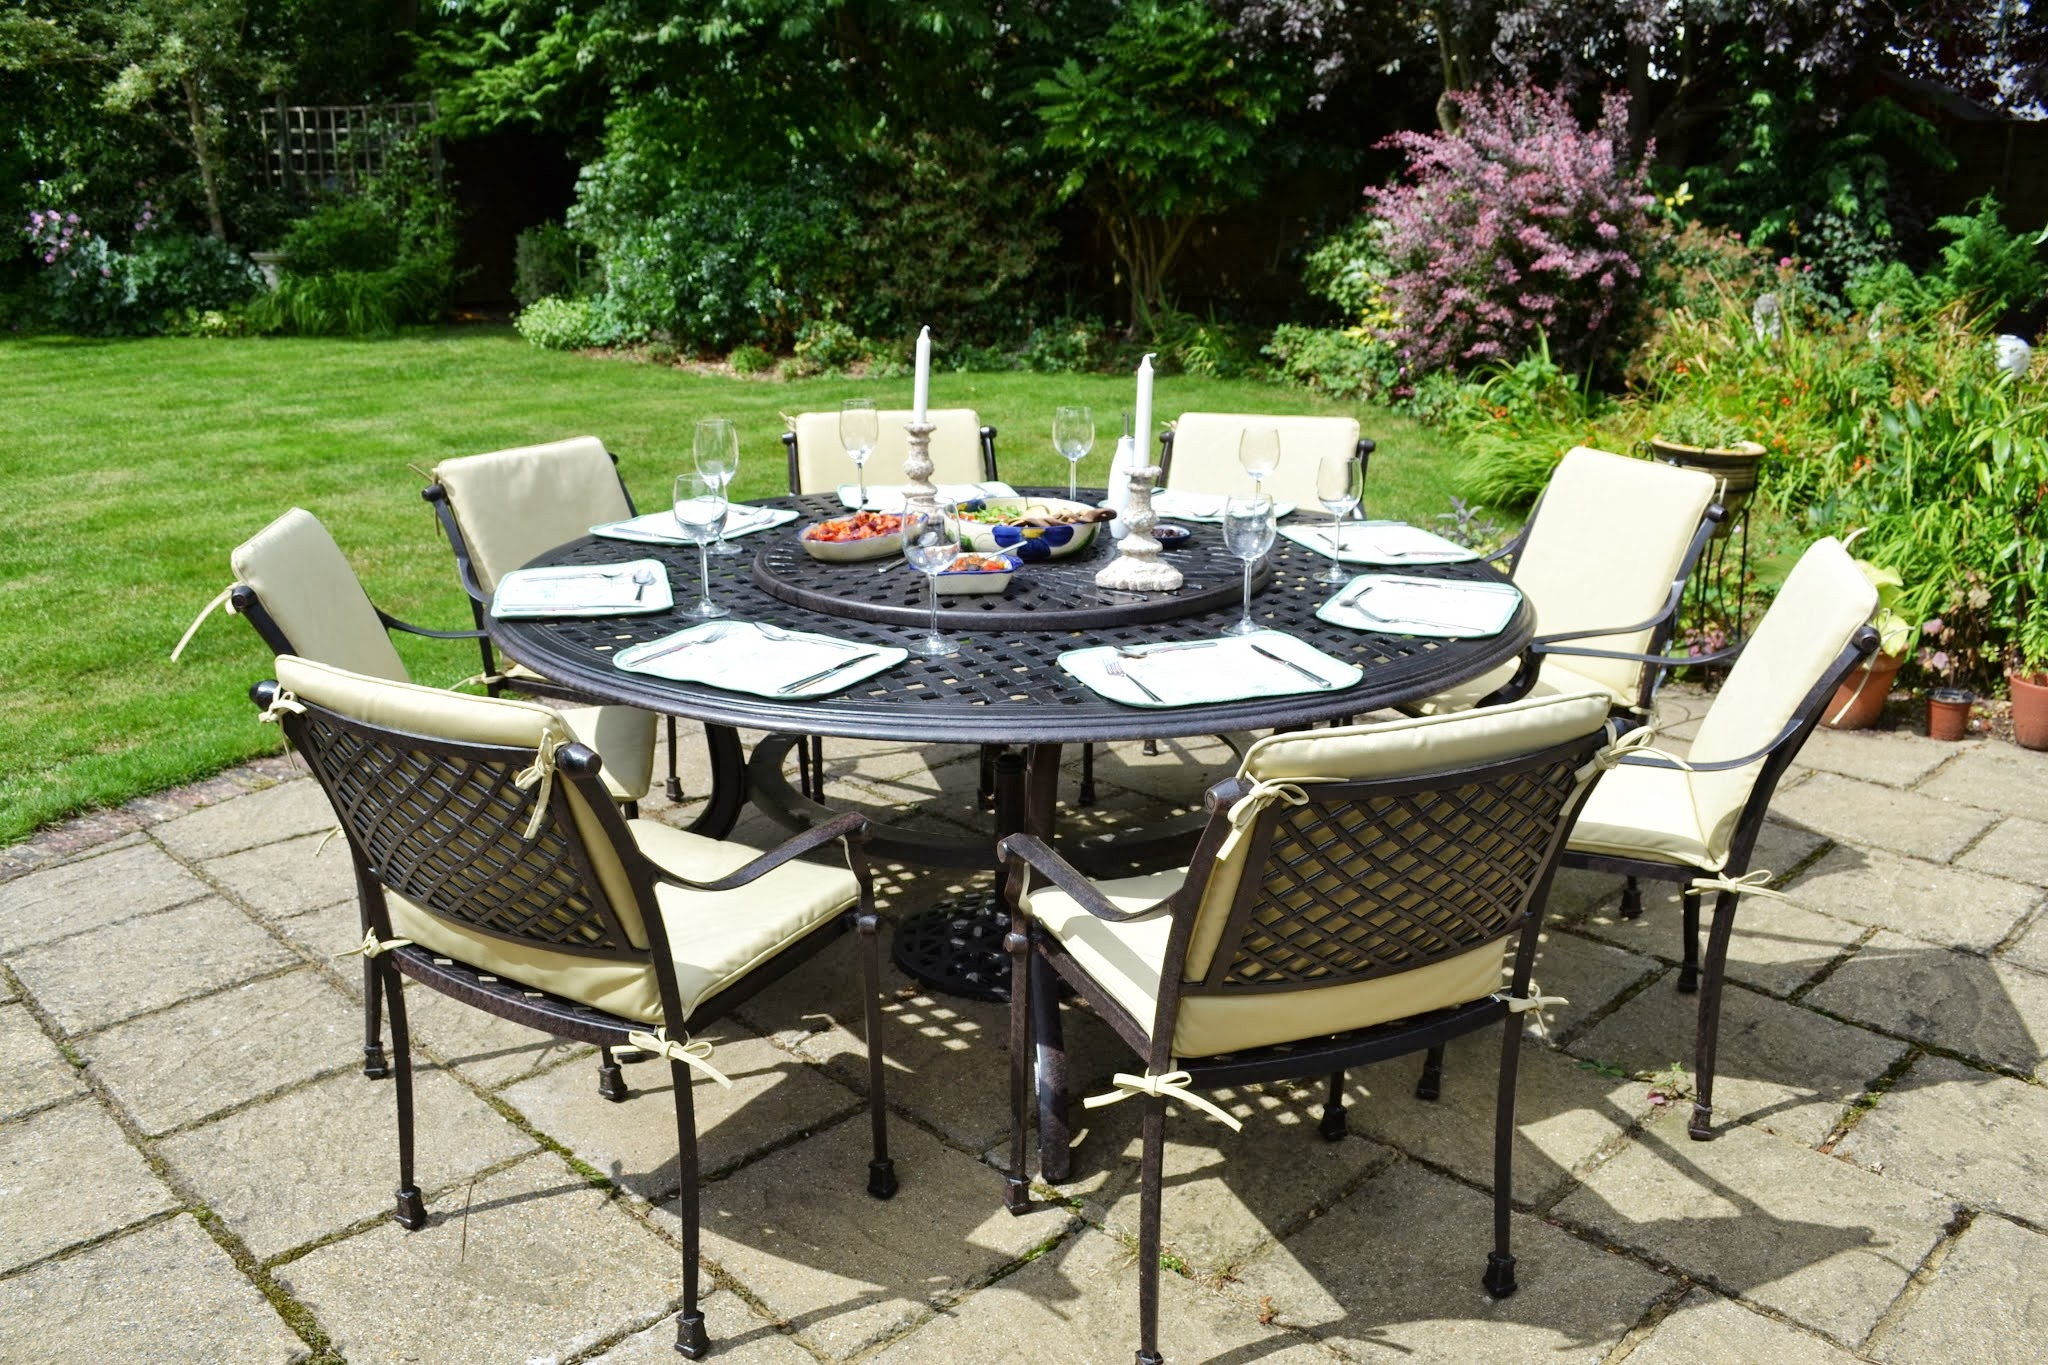 Comparatif tables de jardin à plateau tournant | Le Blog de Lazy Susan